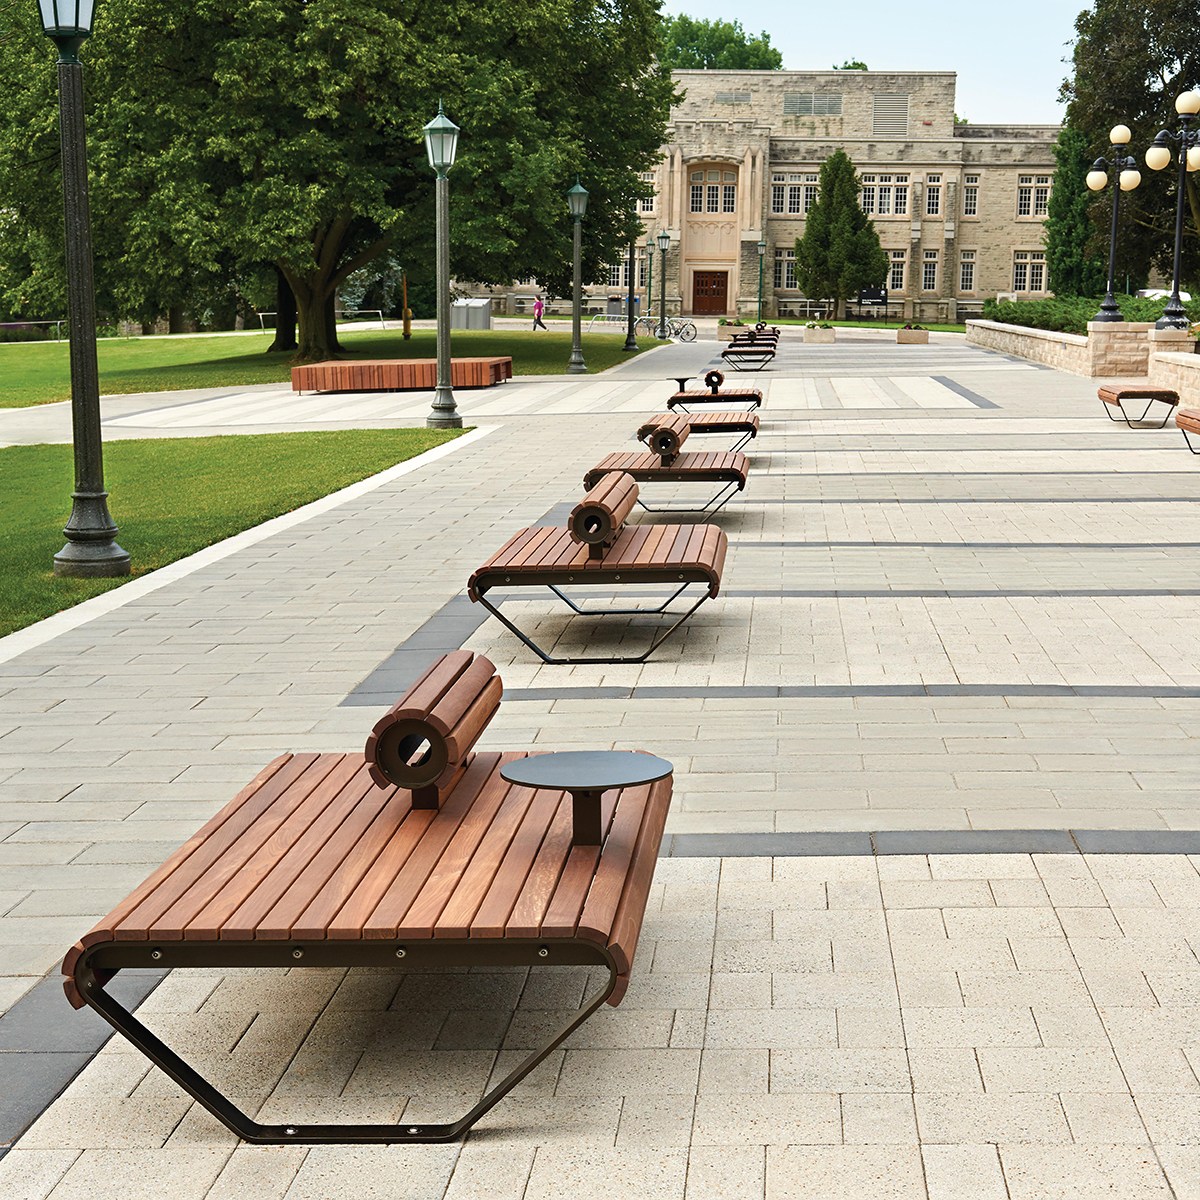 Benches-paving-stones-pathway